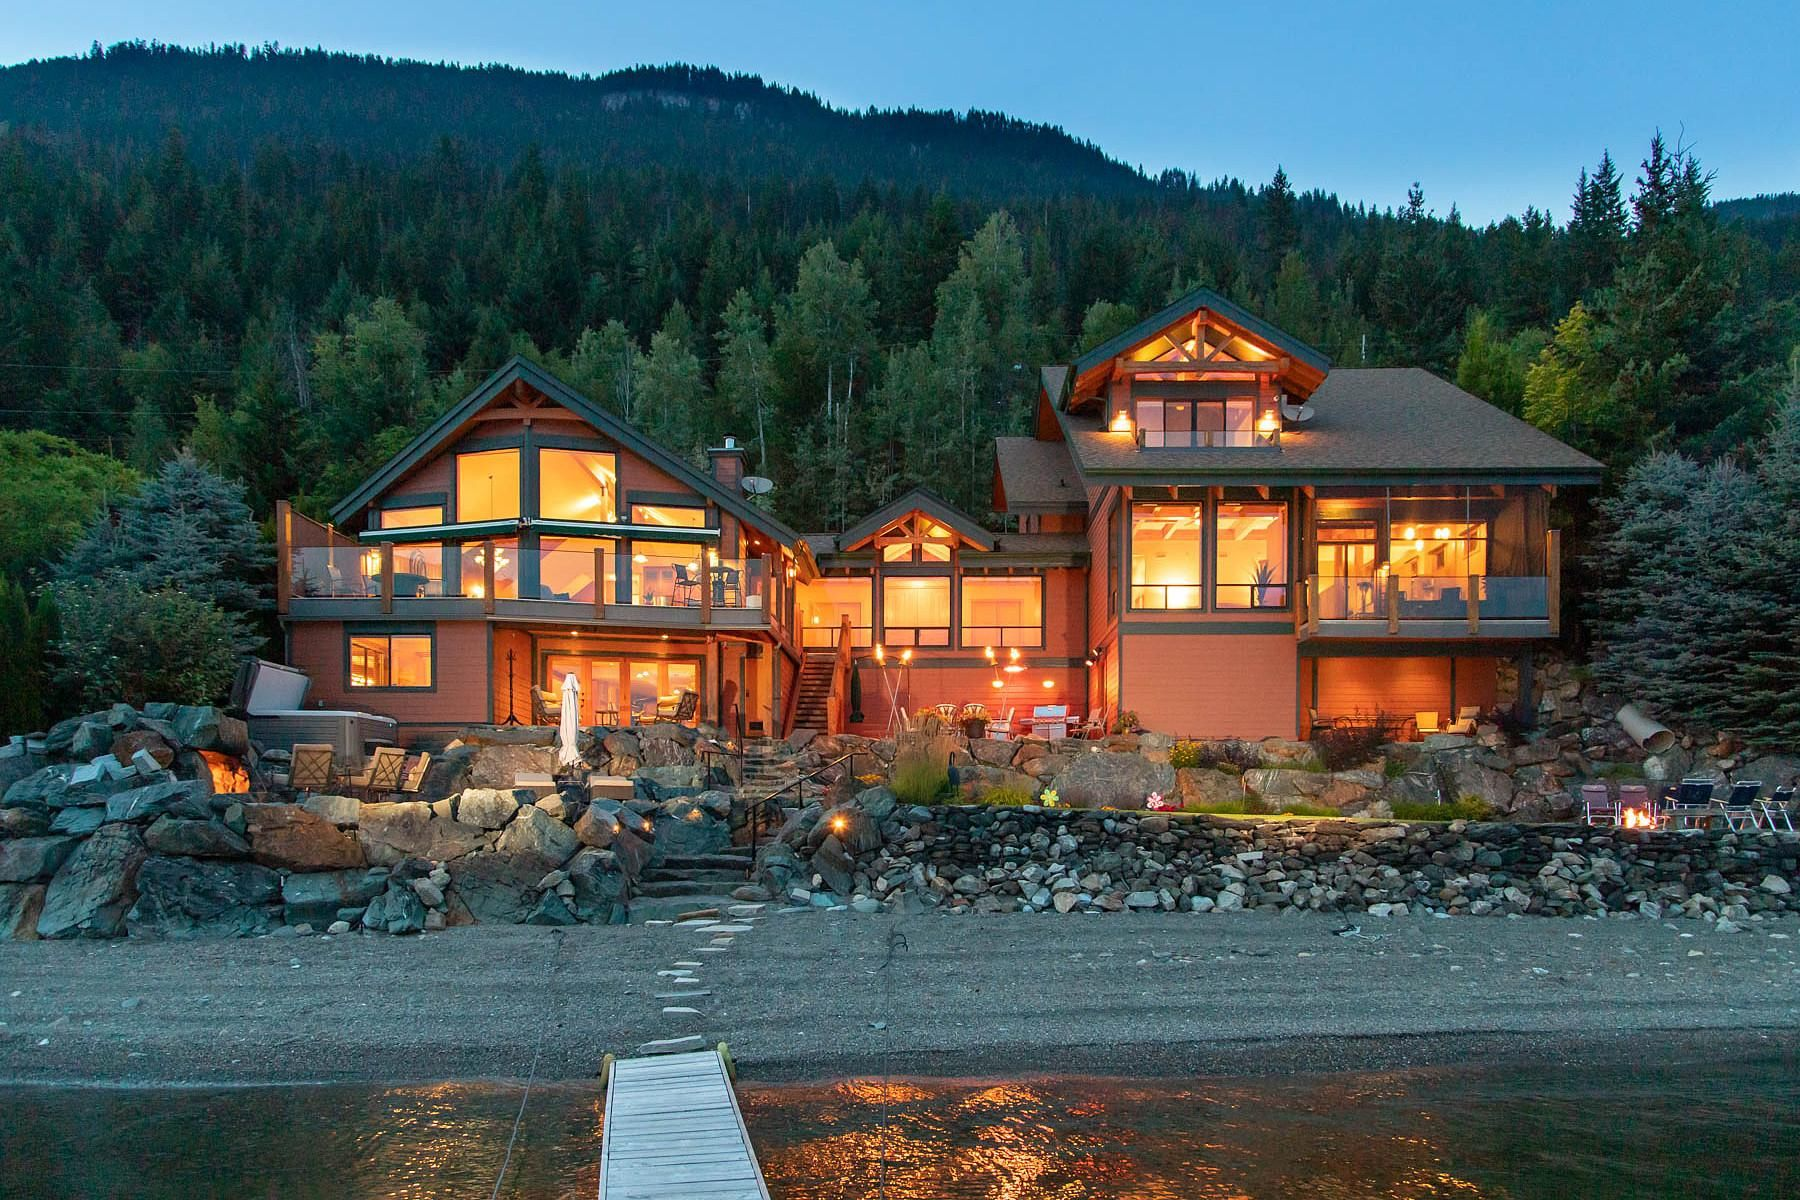 This Magnificent Lakefront Home Located On The Sunny Side Of North Shuswap Lake Is Up For Sale For The Next Buyer To Lakefront Homes Mansions Mansions For Sale